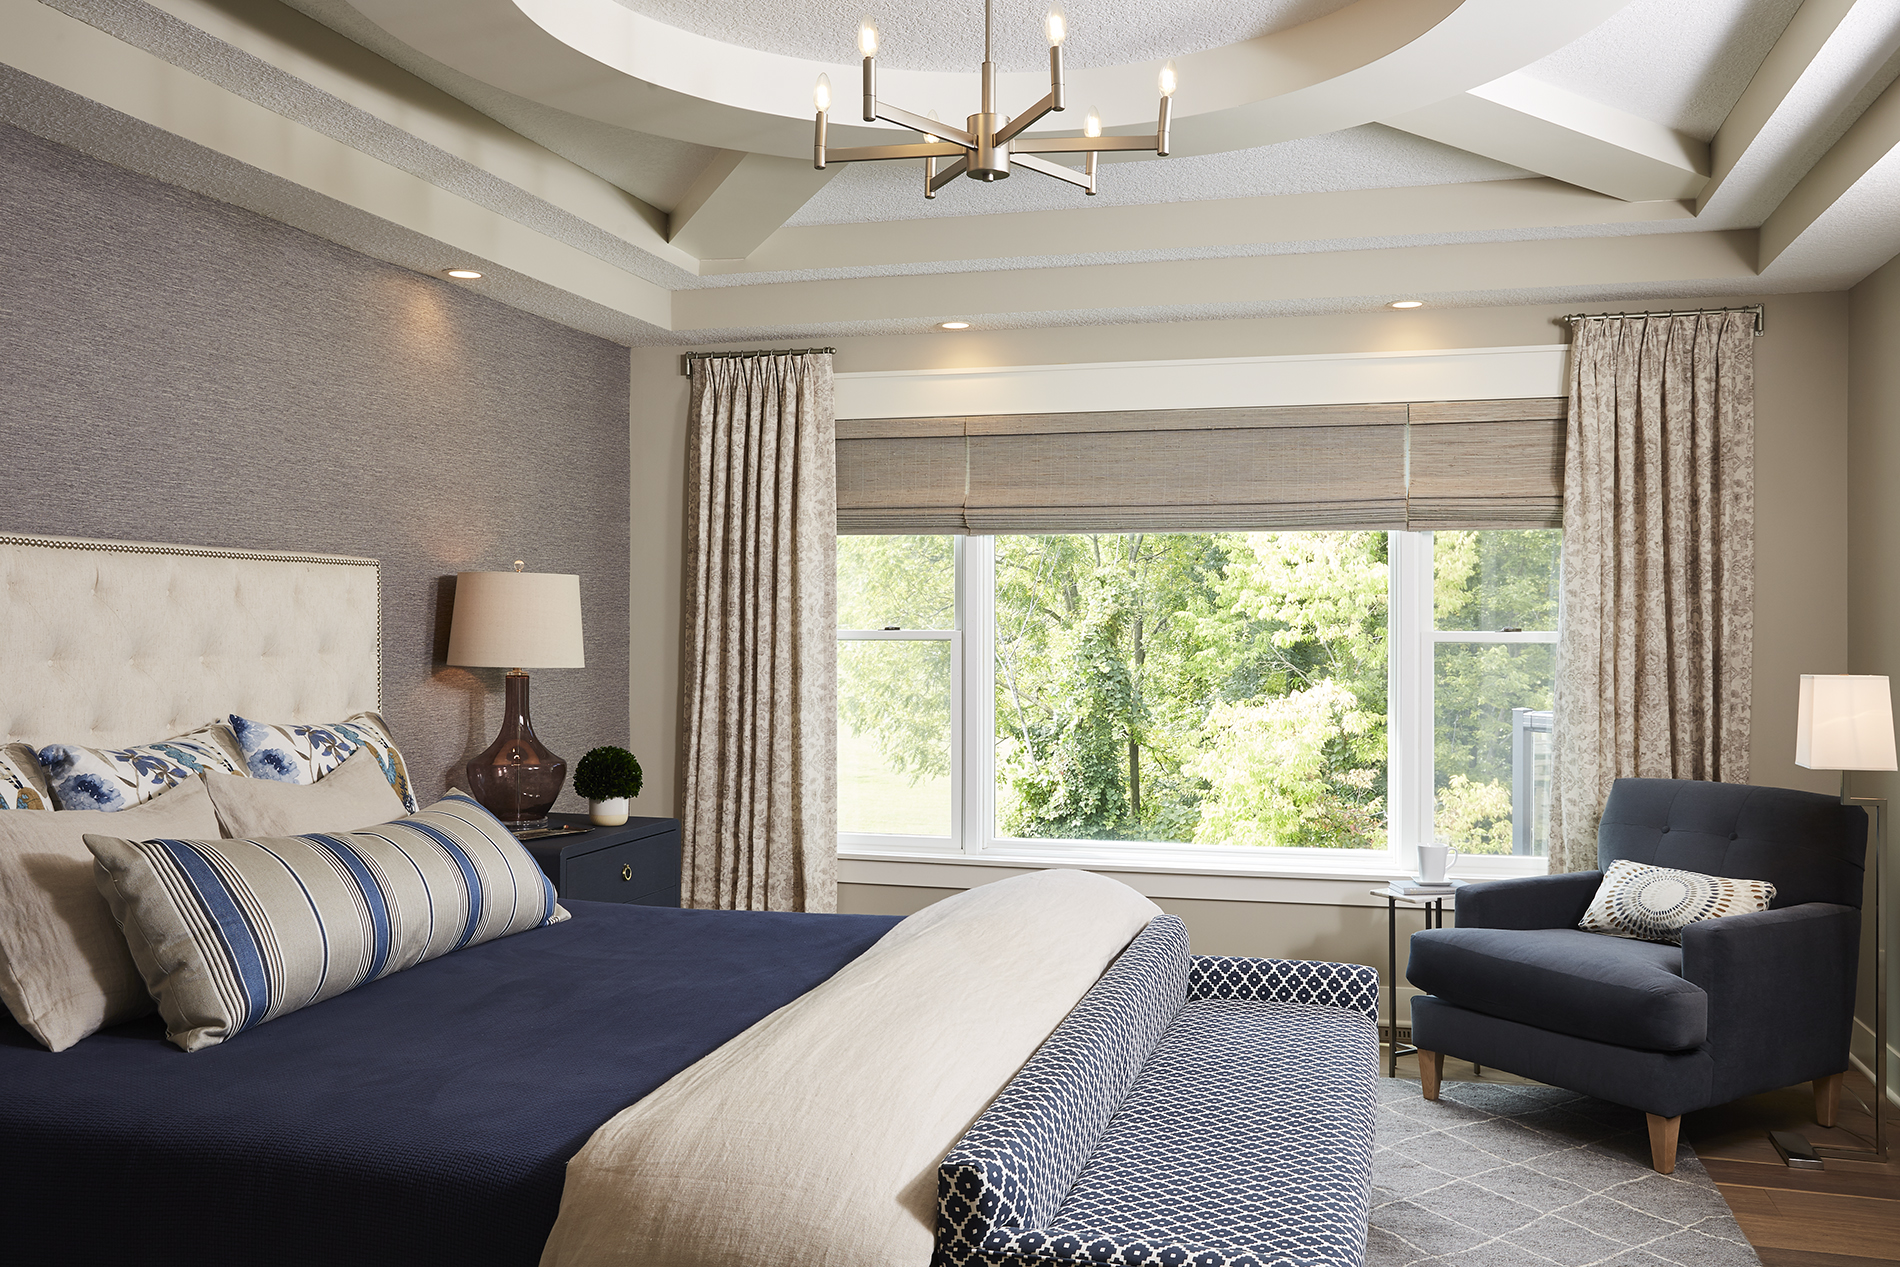 In this master bedroom, shades of blue combine with soft beige and grey to create a colorful, yet calming neutral space that wows. / Design by Sneak Peek Design